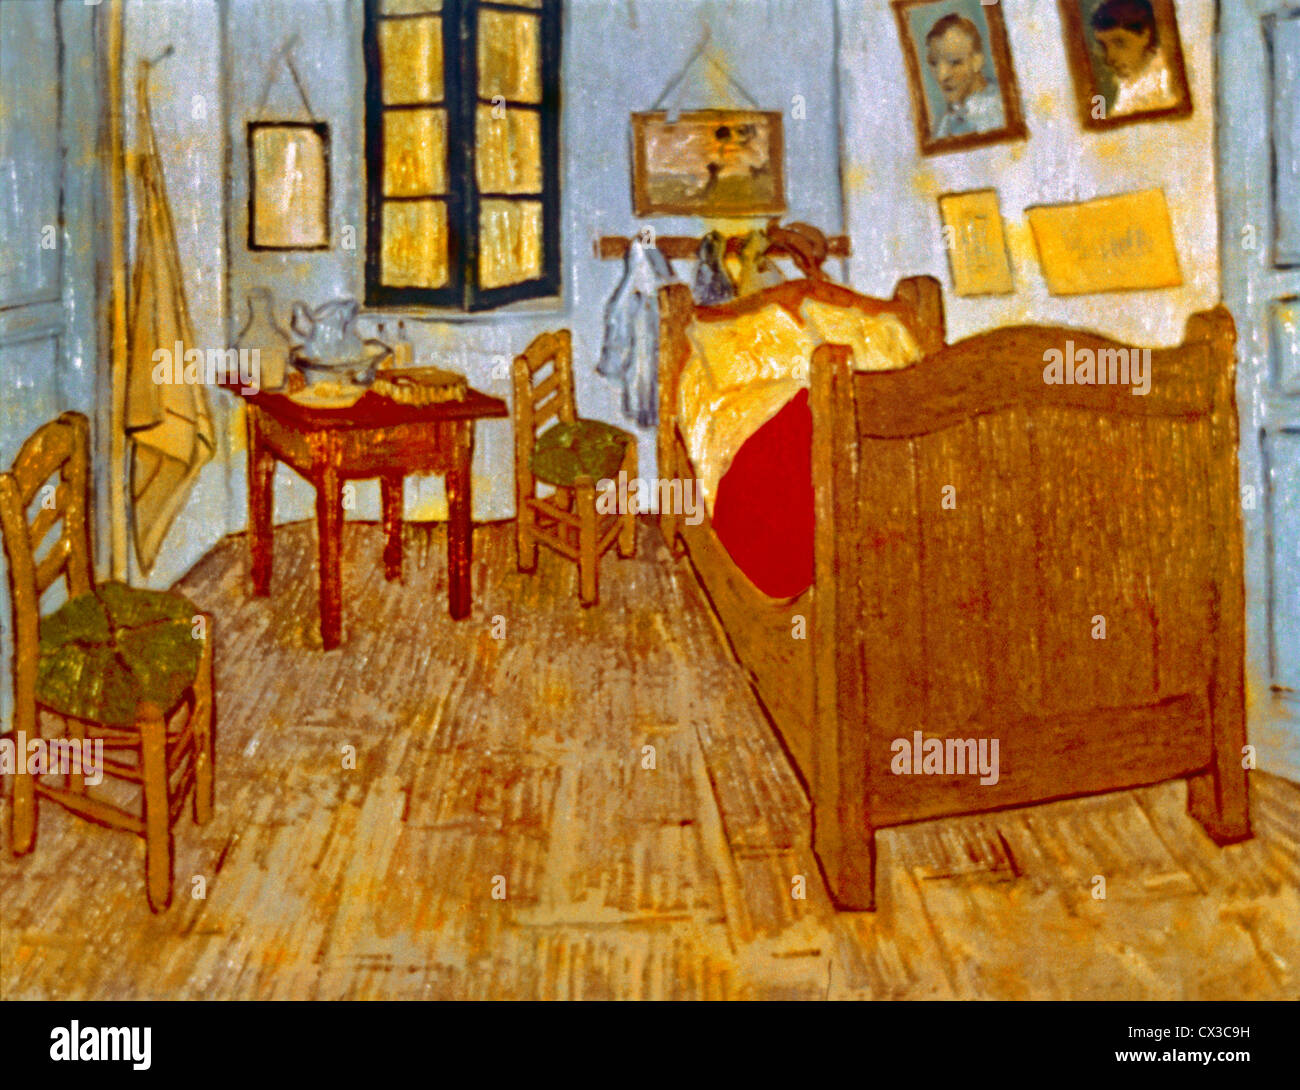 La Chambre De Vincent La Chambre De Vincent Van Gogh Banque D Images Photo Stock